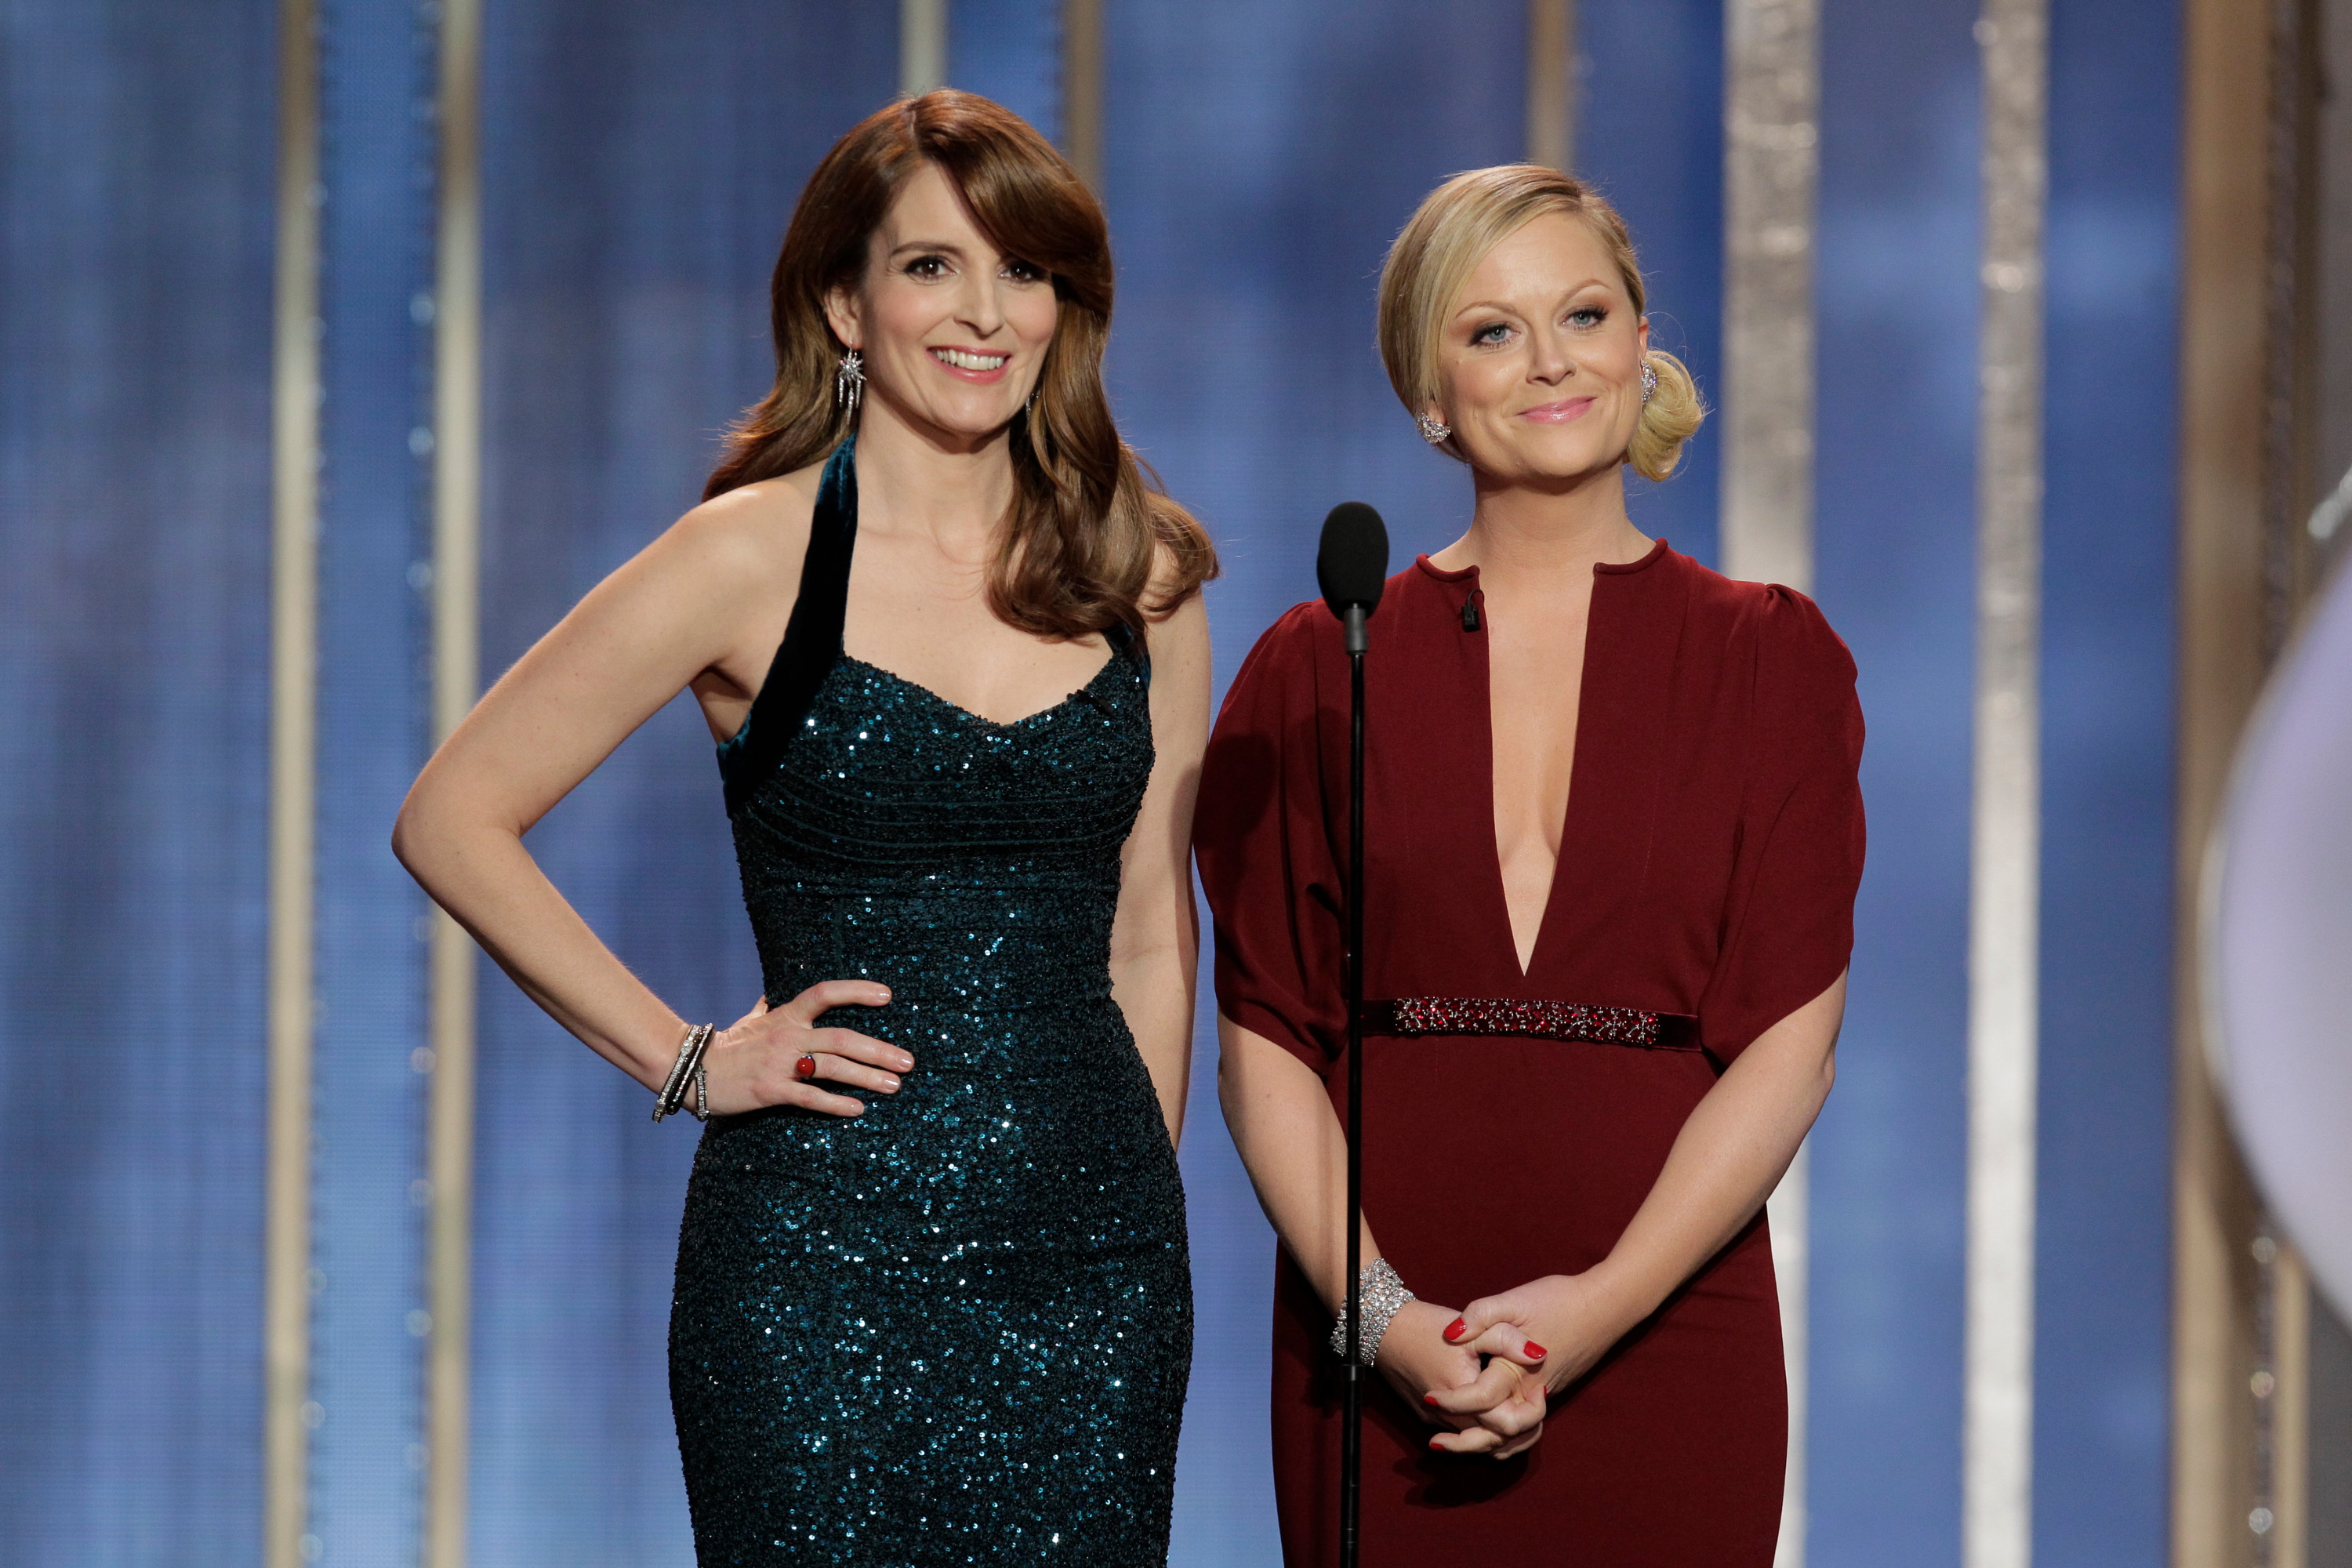 Tina Fey and Amy Poehler to host Golden Globes 2021 from opposite coasts